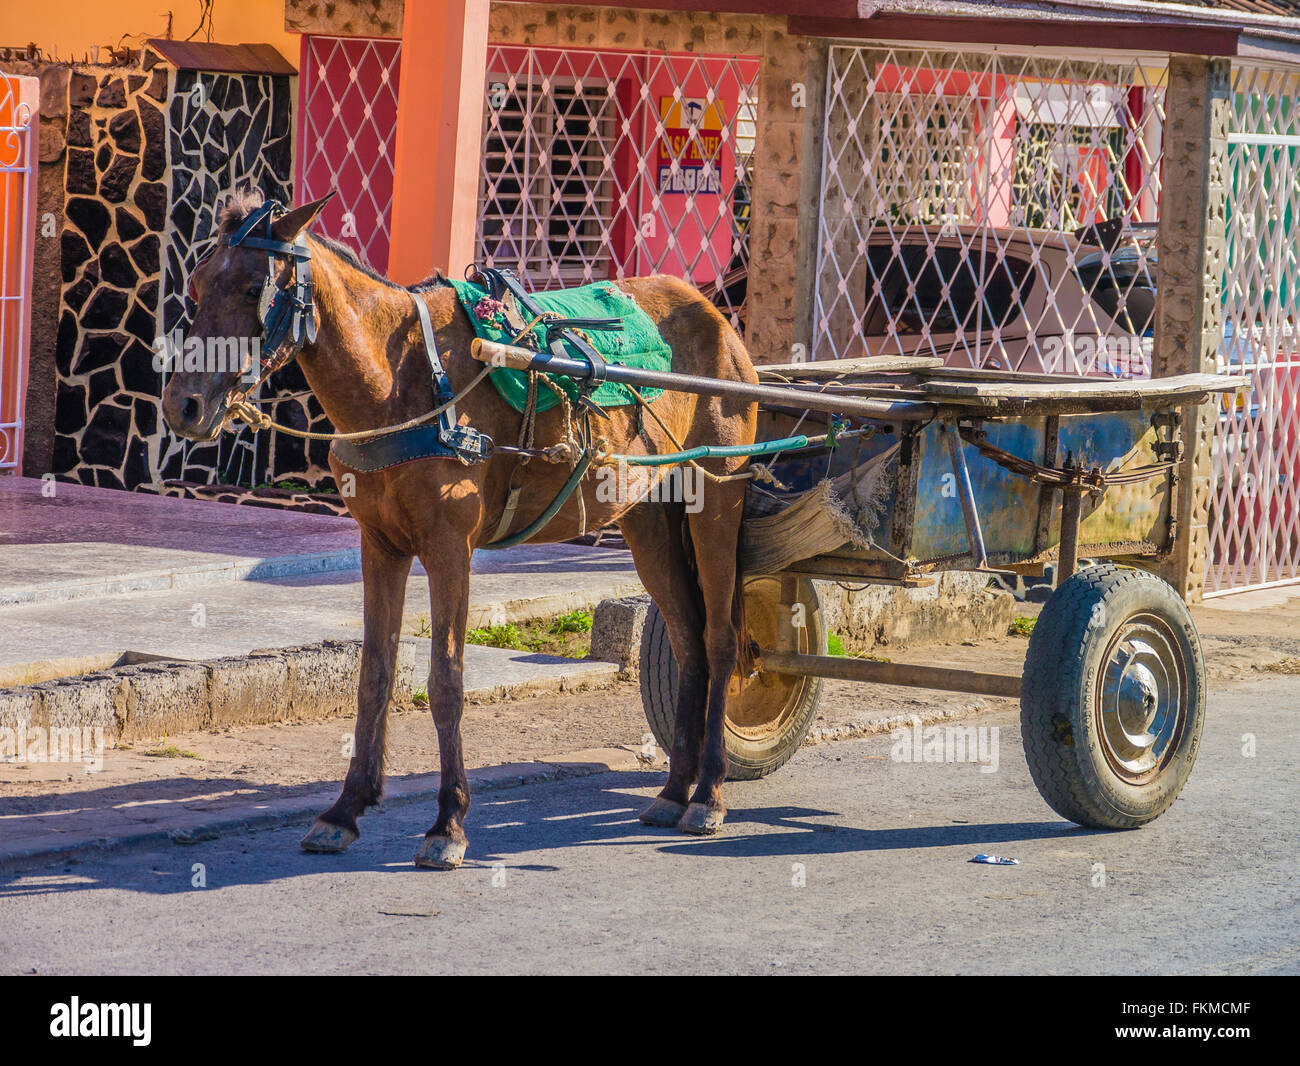 Working horse hitched to two-wheeled cart in Cuba waiting for his owner. - Stock Image